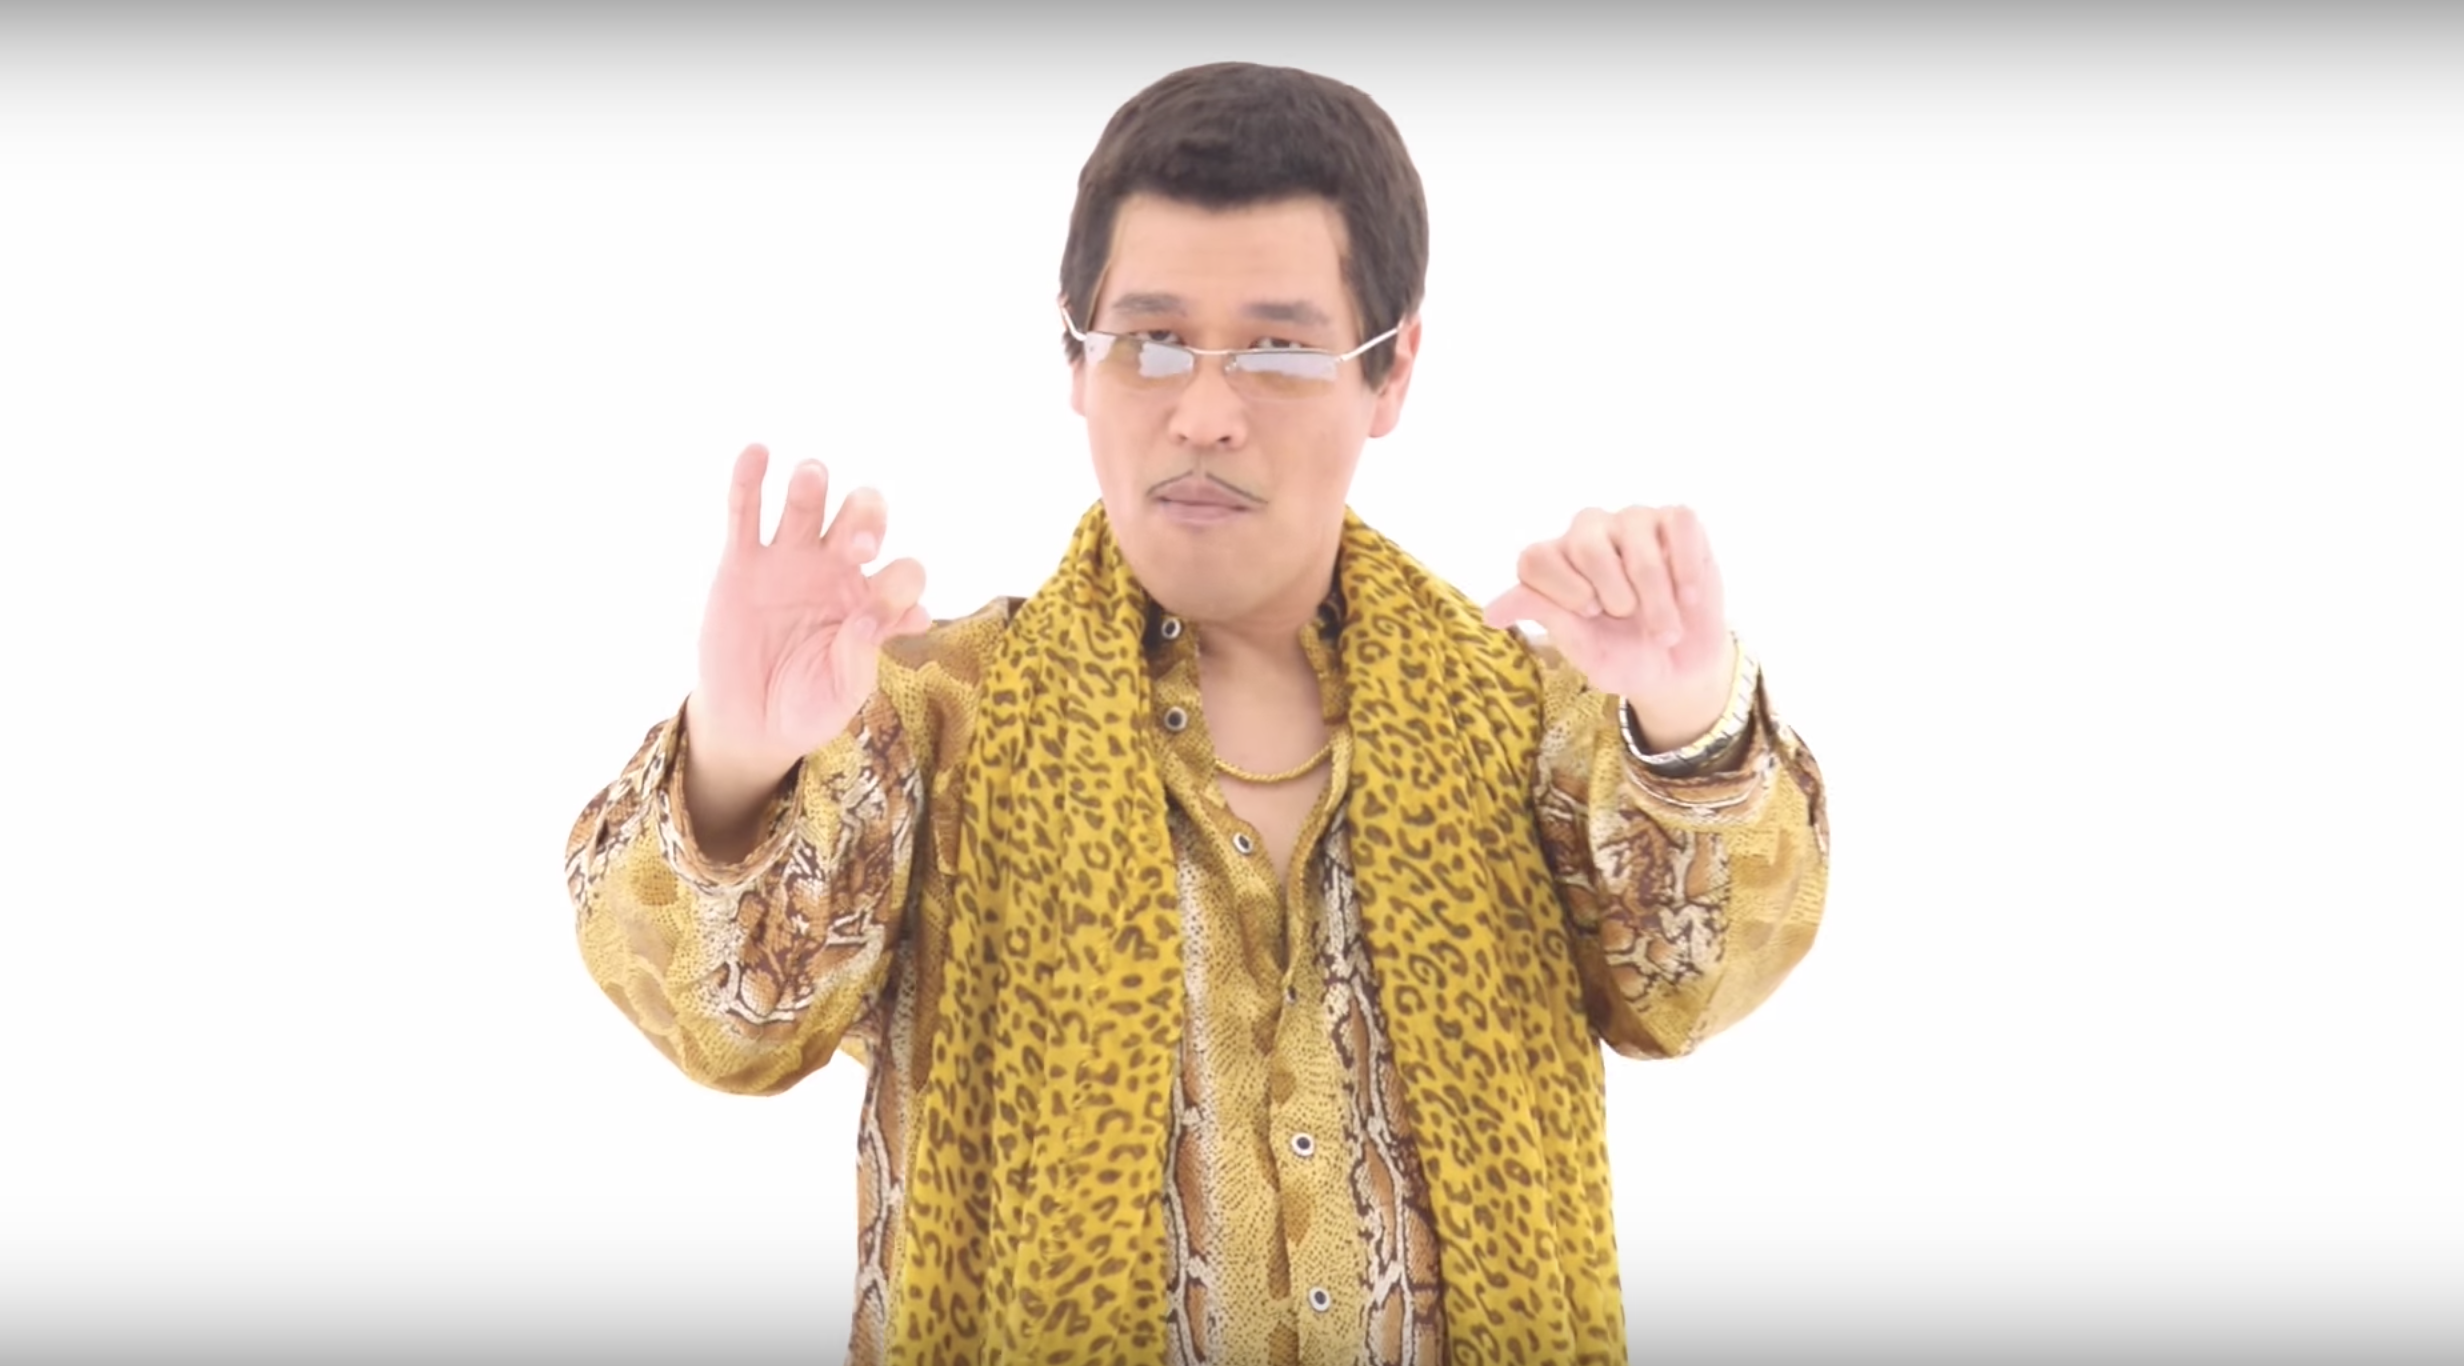 10-30-pen-pineapple